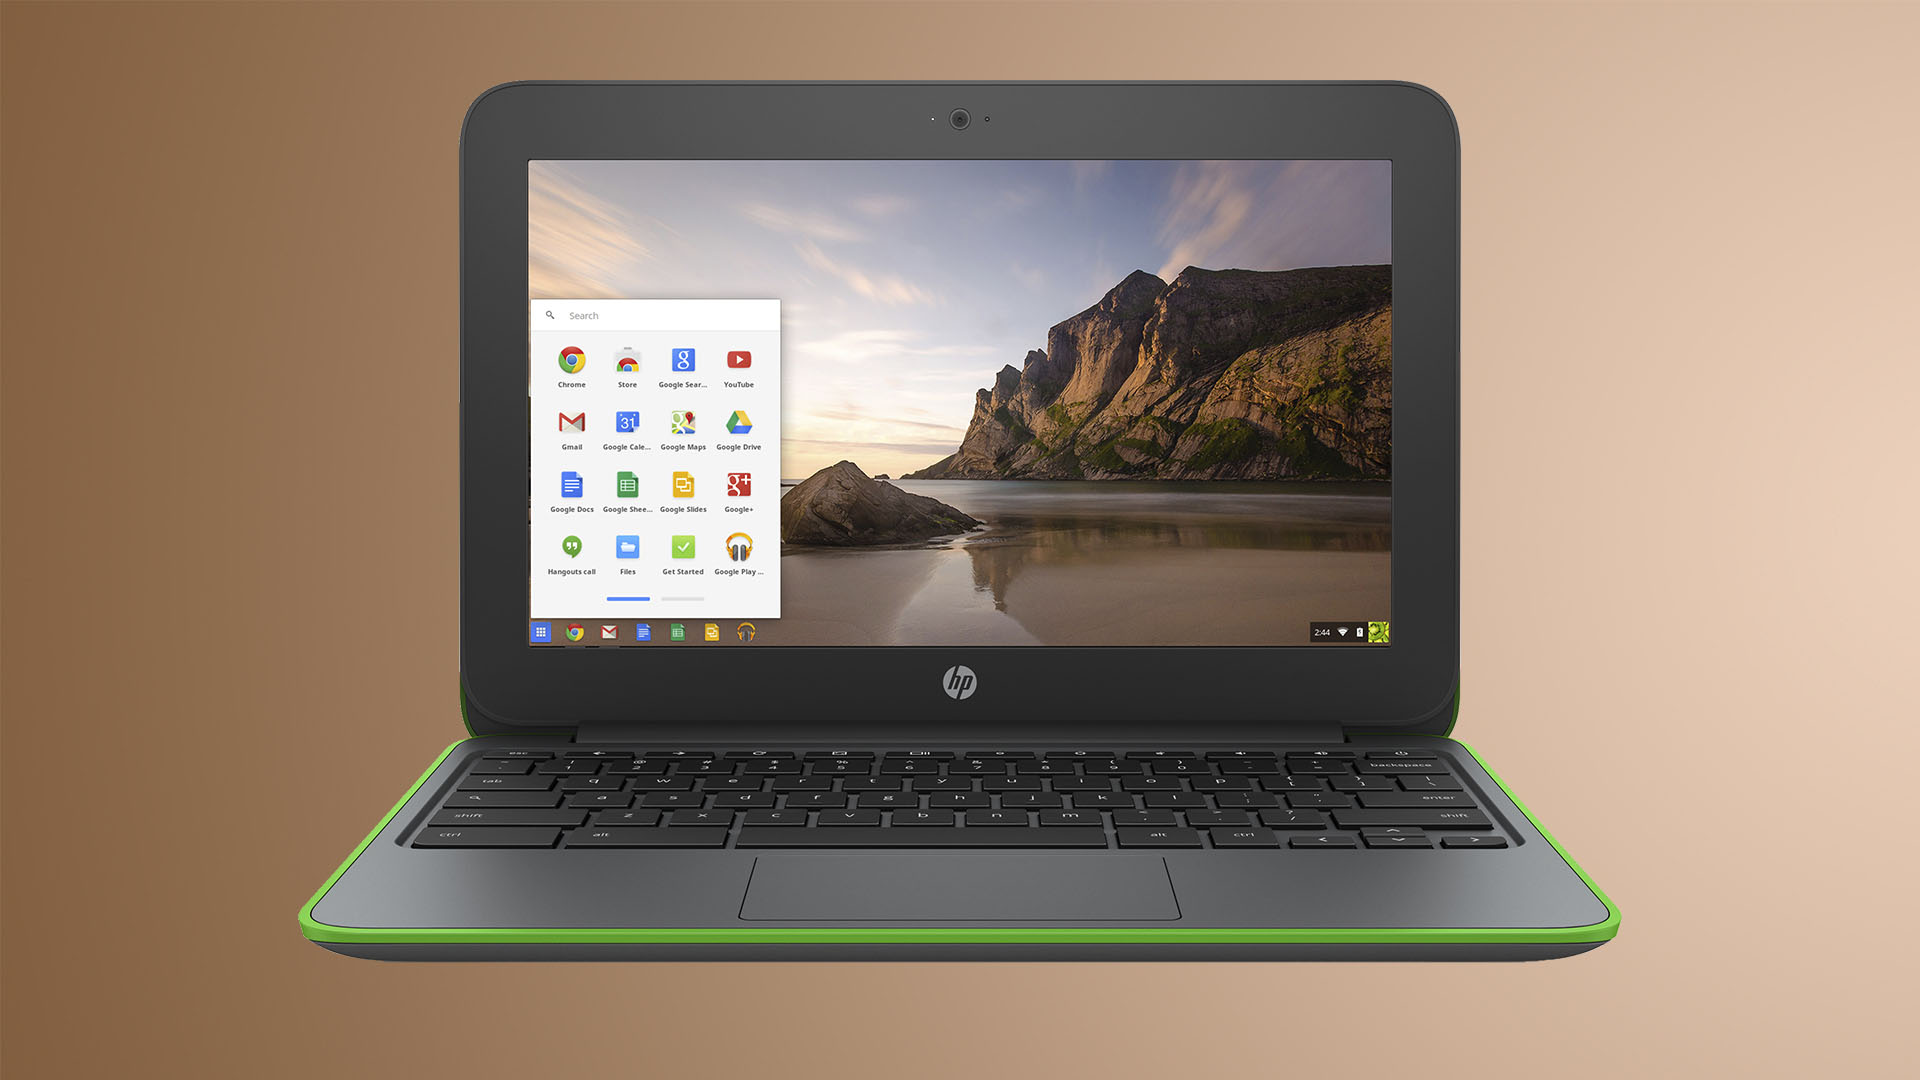 Hps Super Flexible Chromebook Comes At A Bargain Price